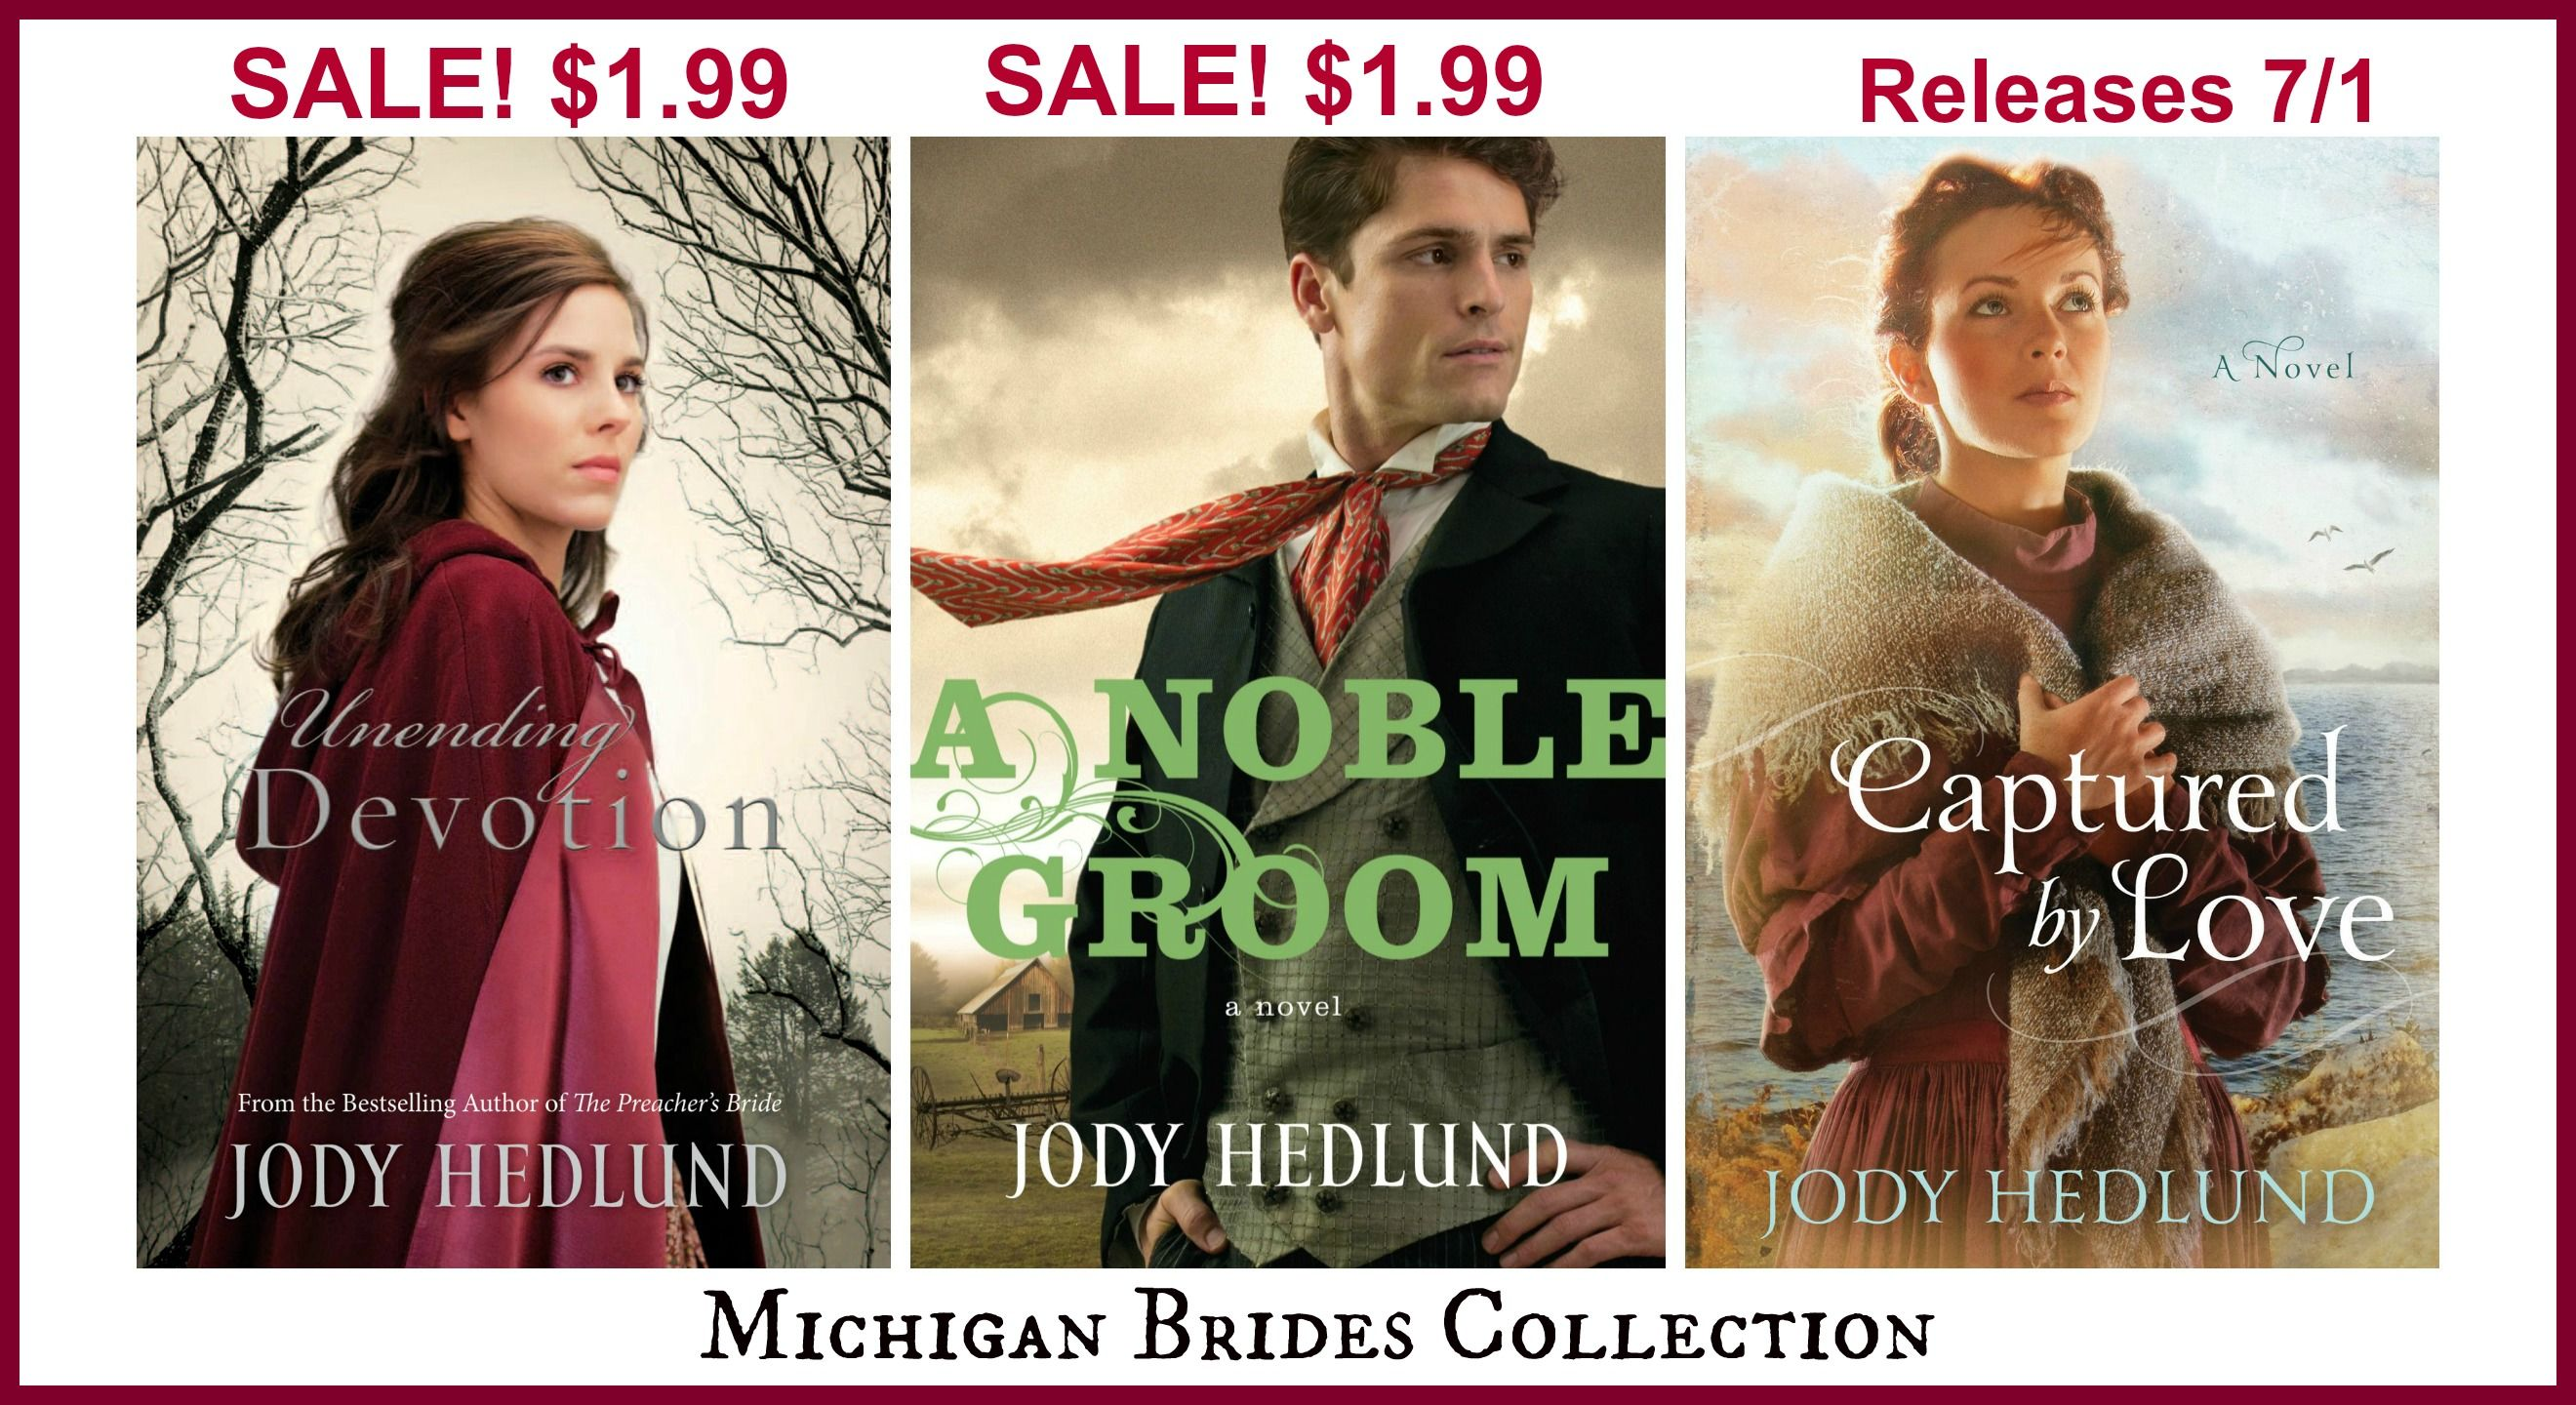 GREAT DEAL! Michigan Brides Collection (Books 1 & 2) are on sale for $1.99 each for a limited time! #Nook #Kindle Please share the news with all your friends!  Here's the link to my Amazon Page: http://www.amazon.com/Jody-Hedlund/e/B003JLXD6A/?ref=ntt_athr_dp_pel_1